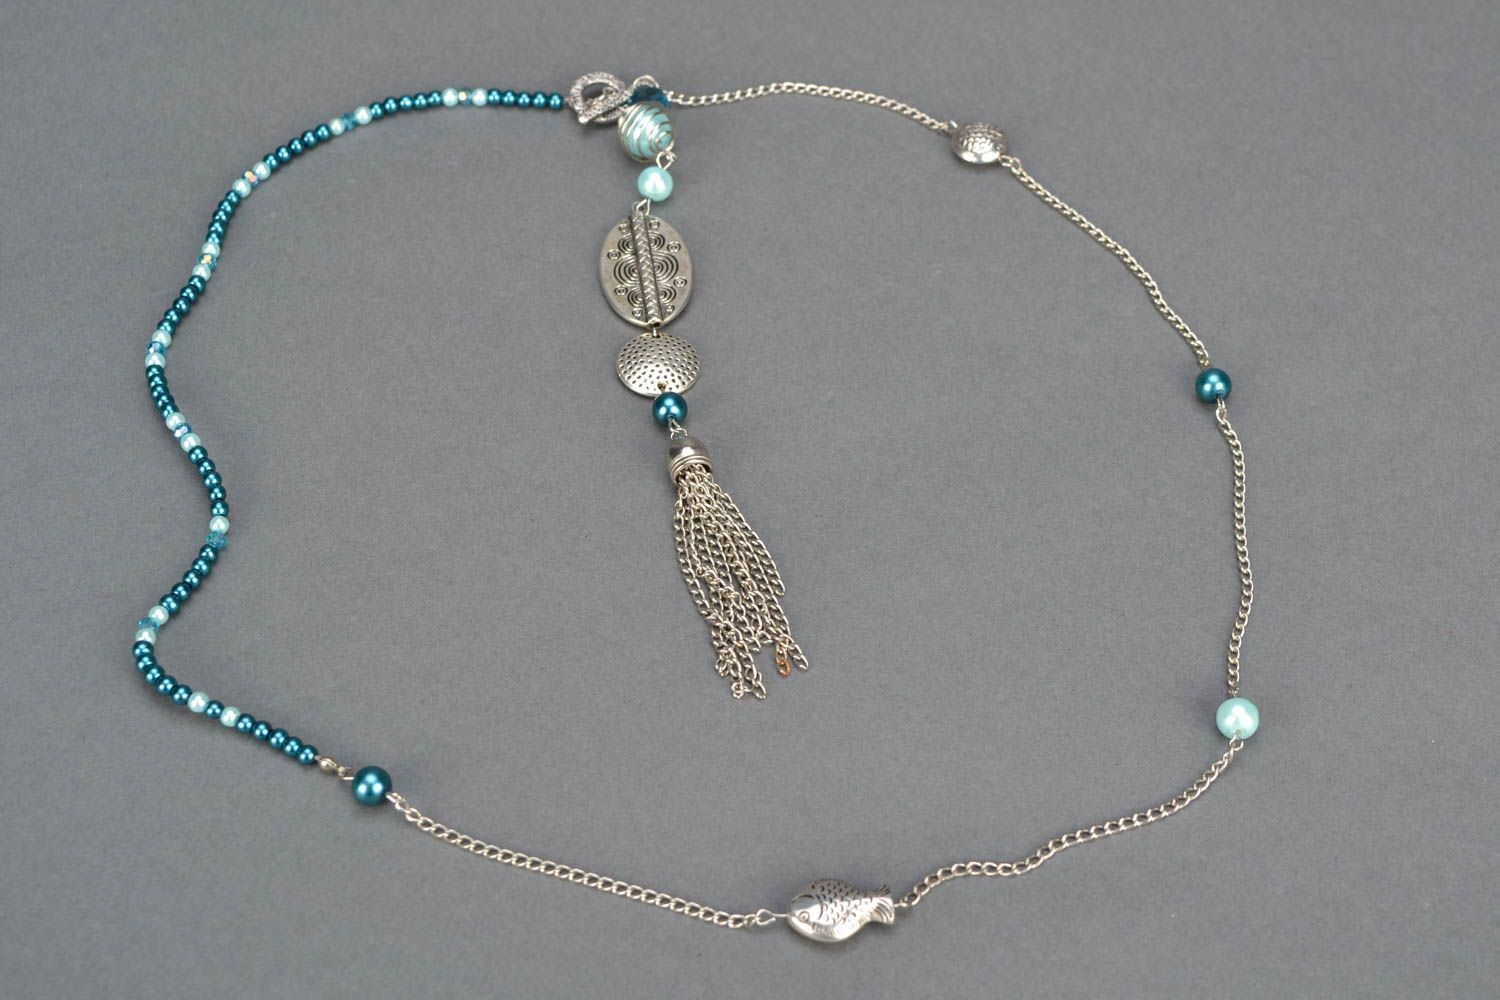 Necklace made of beads and metal photo 3